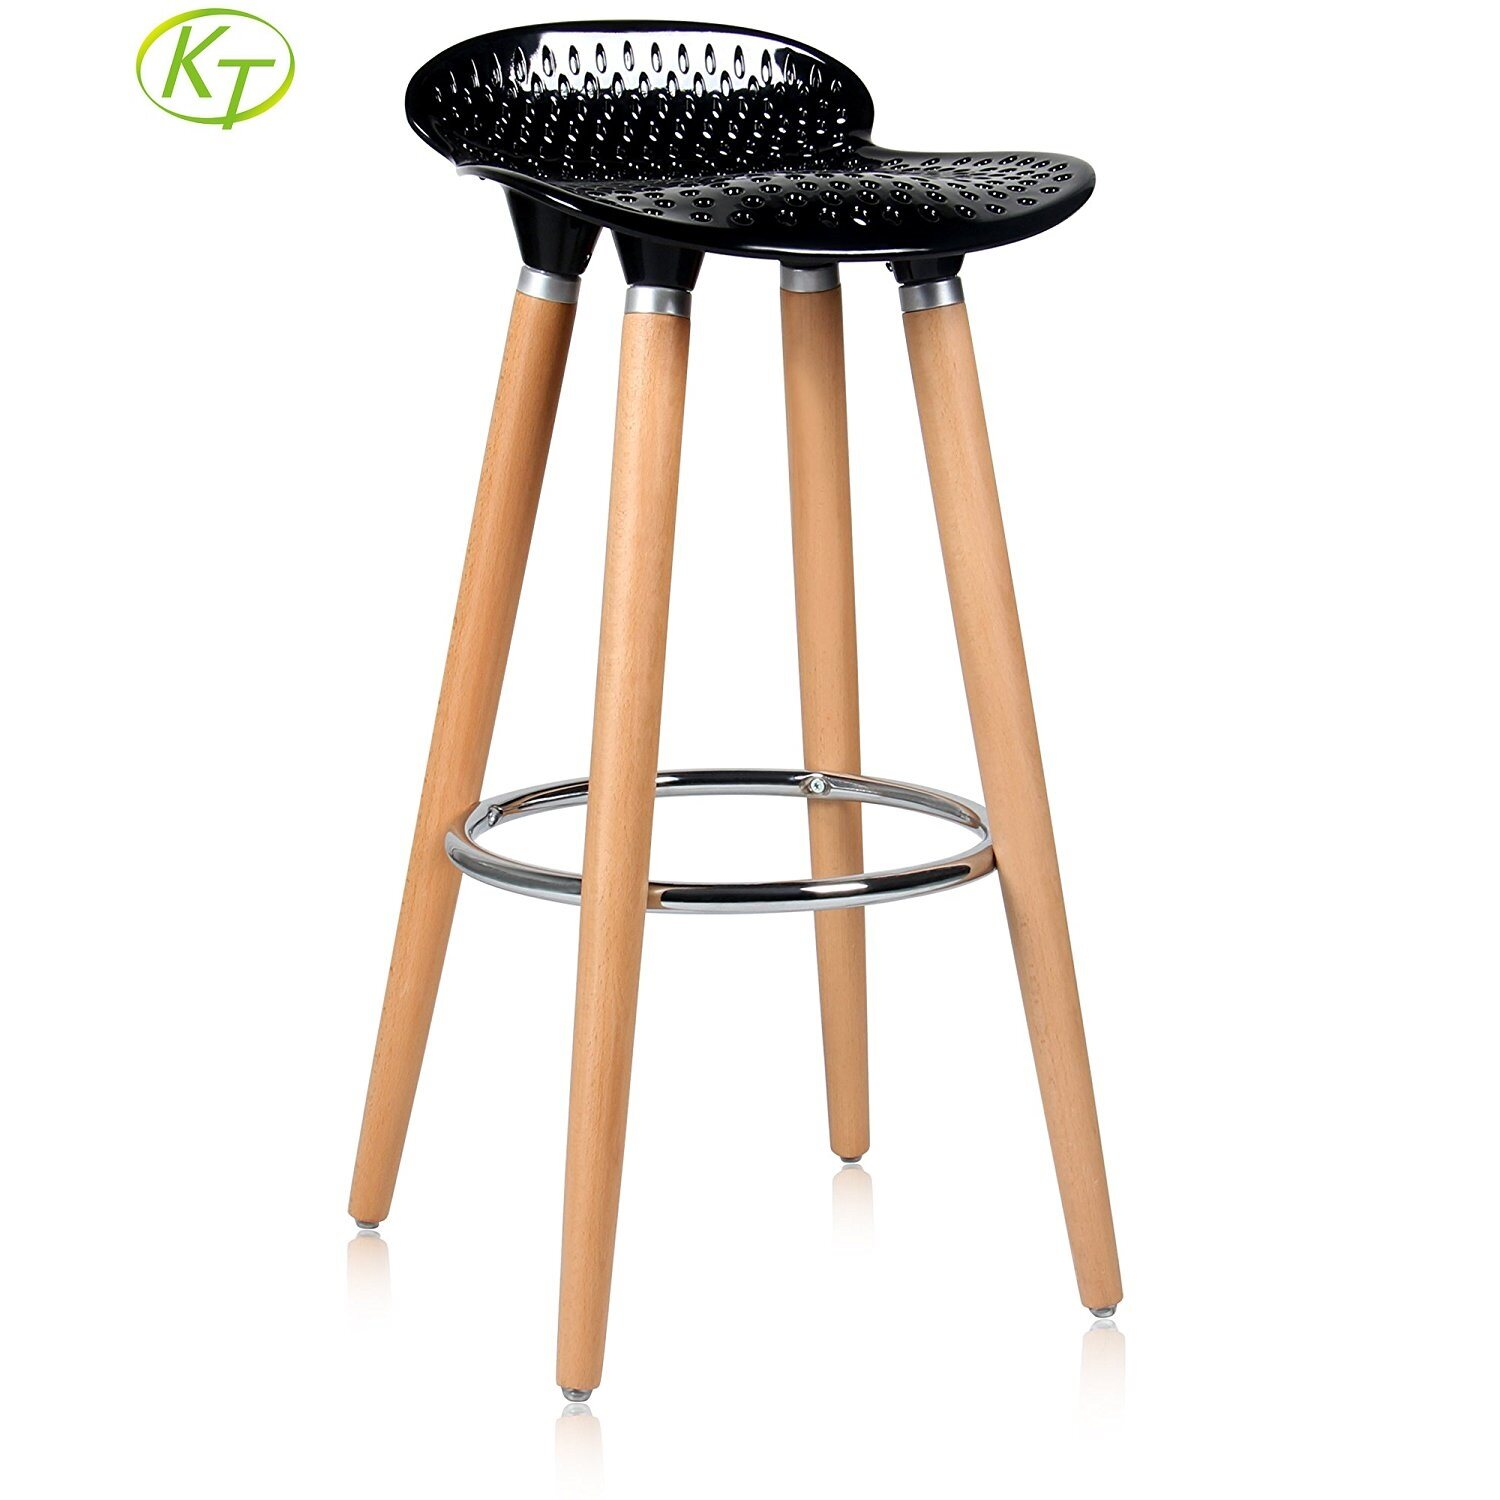 Wooden Backless Bar Stools Black Bar Chairs KT-3105